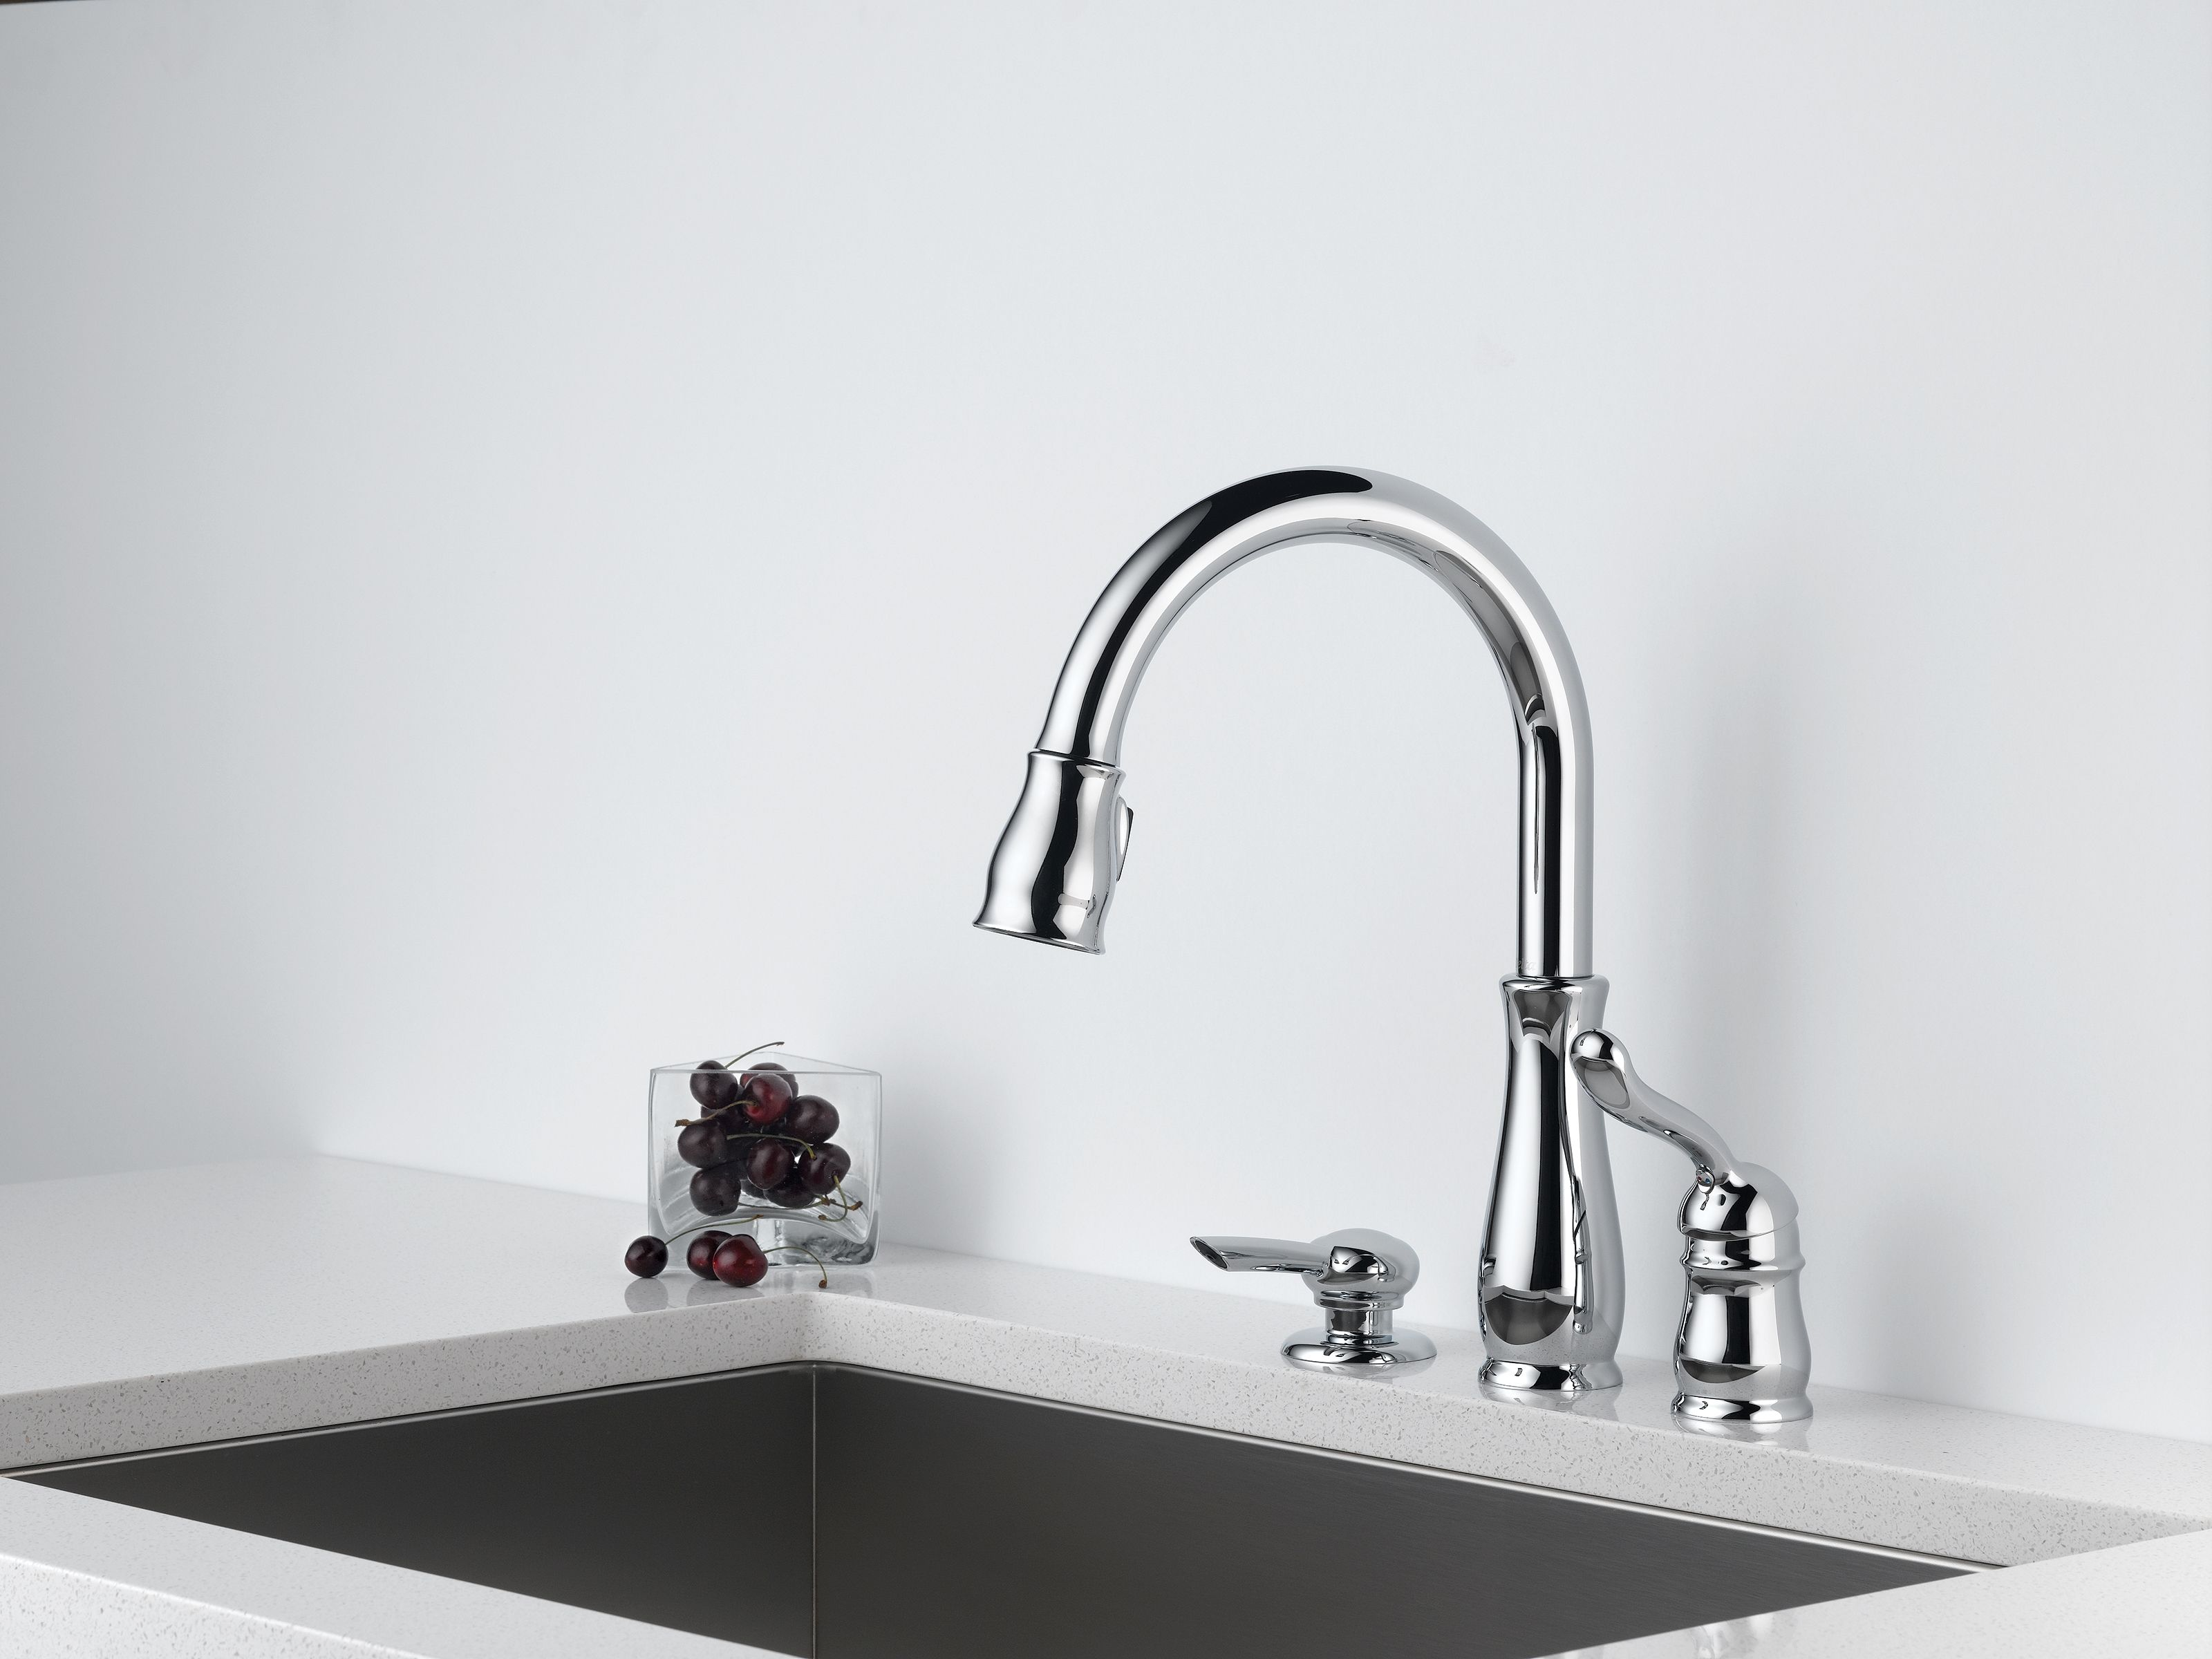 kitchens chrome free kitchen com faucet american selectronic pull faucets hands touchless in avery polished down